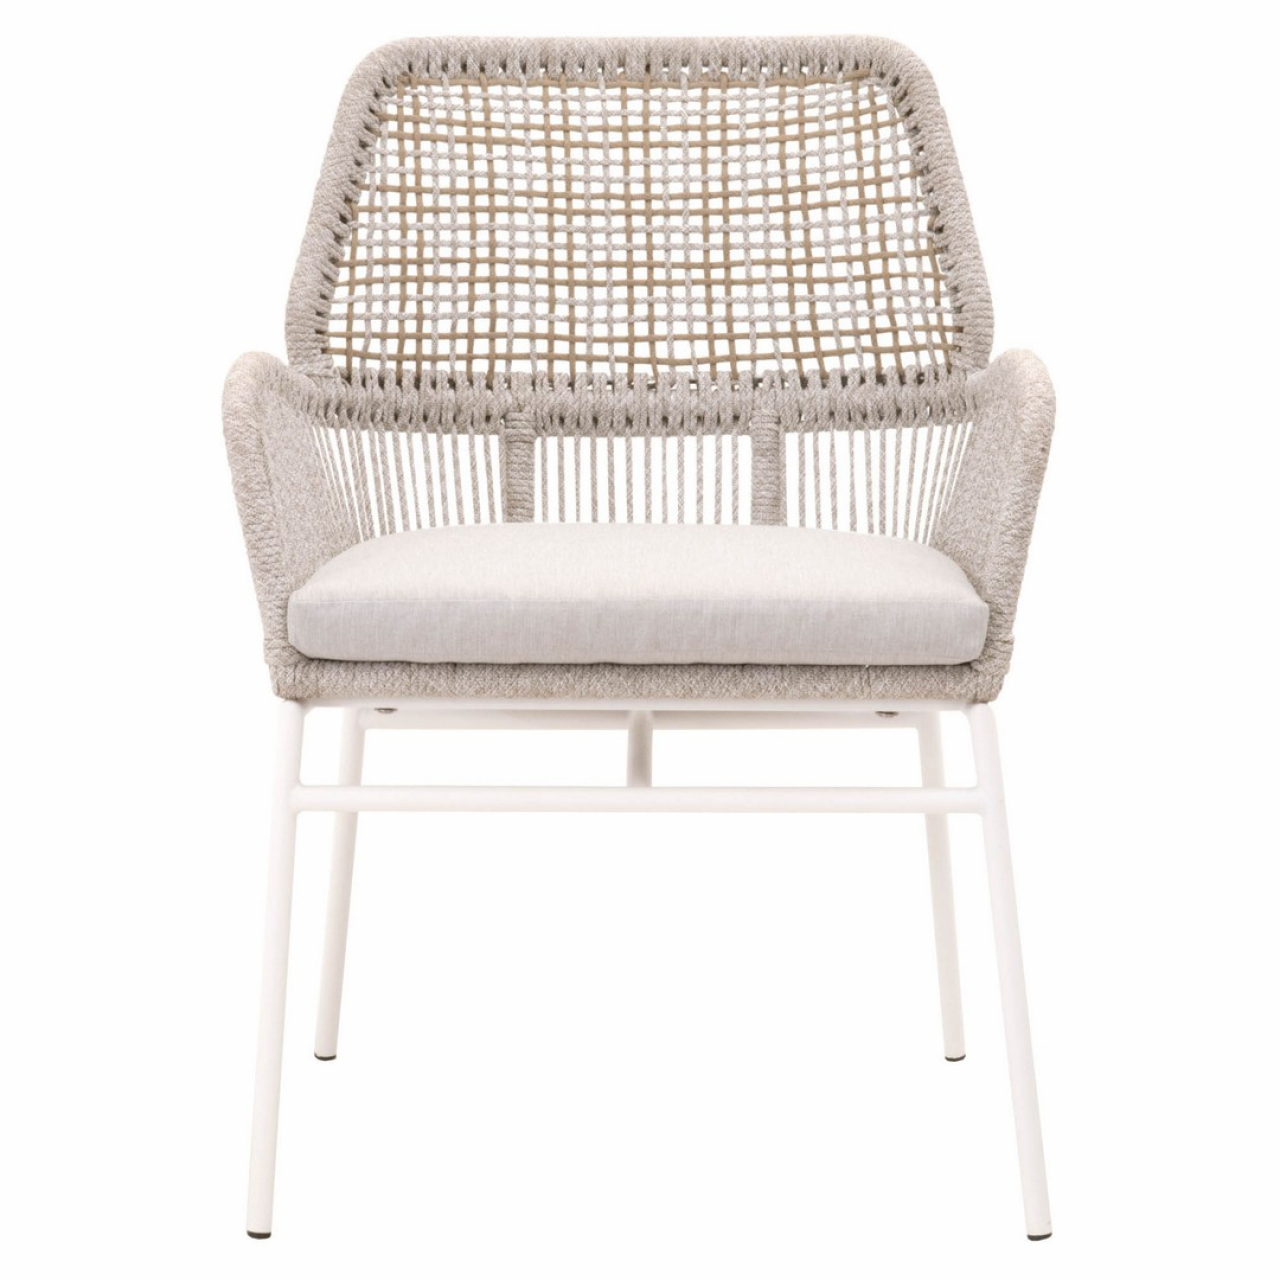 Knit+Outdoor+Arm+Chair+-+Taupe+-+1.jpg